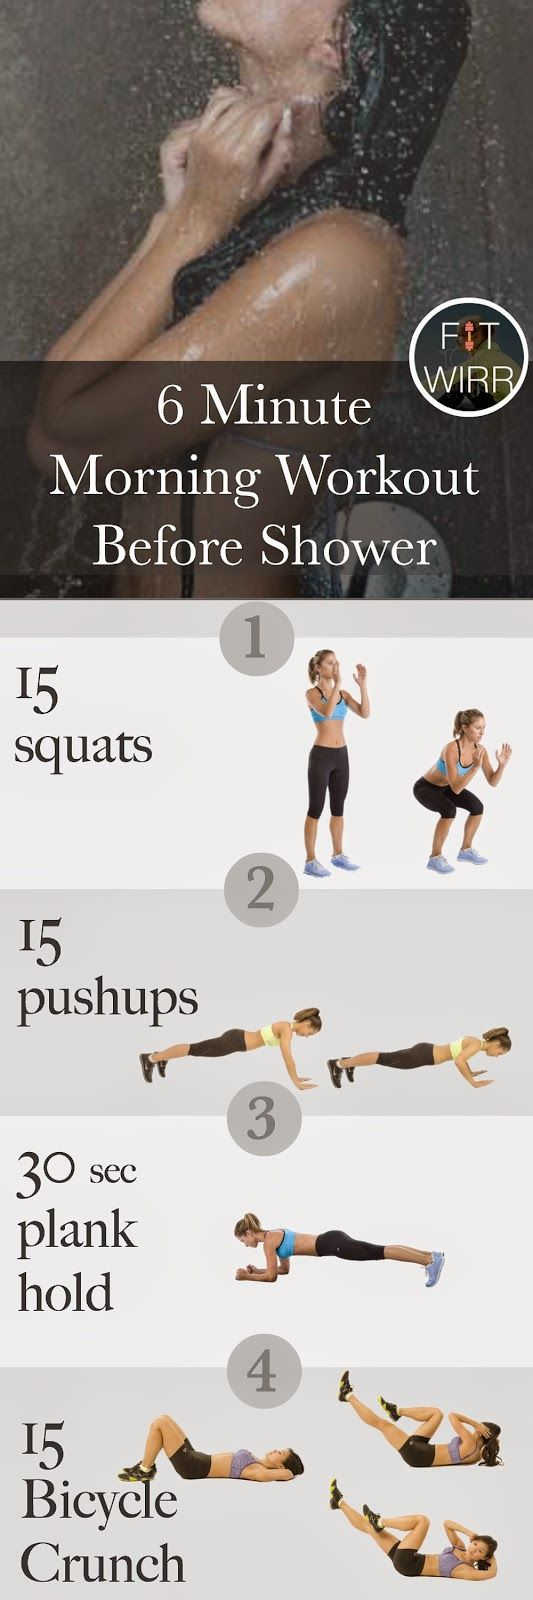 6 Minute Morning Workout Before Shower.